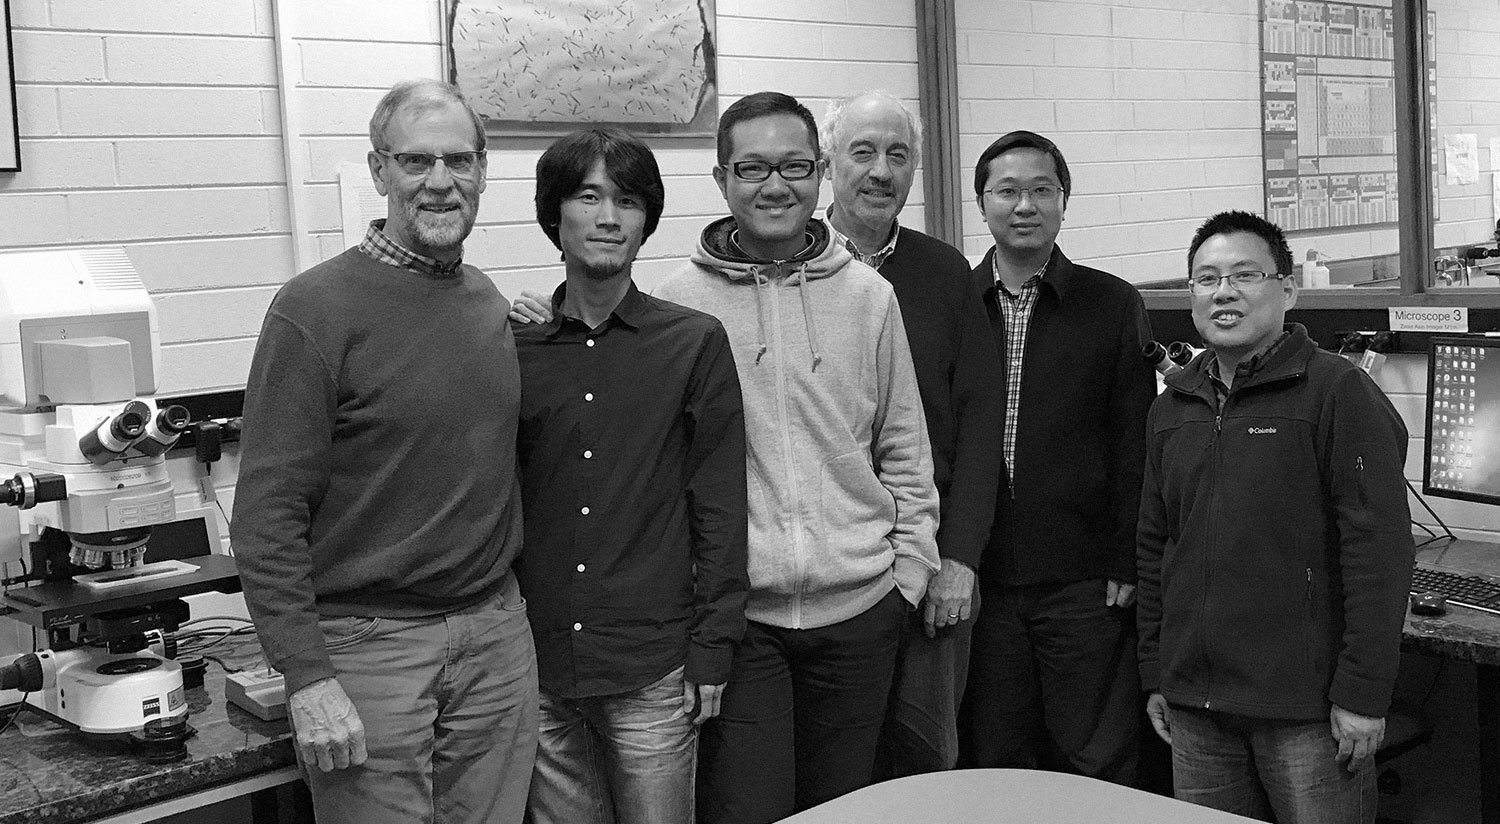 Prof. Andy Gleadow and his Thermochronology research group in the University of Melbourne.